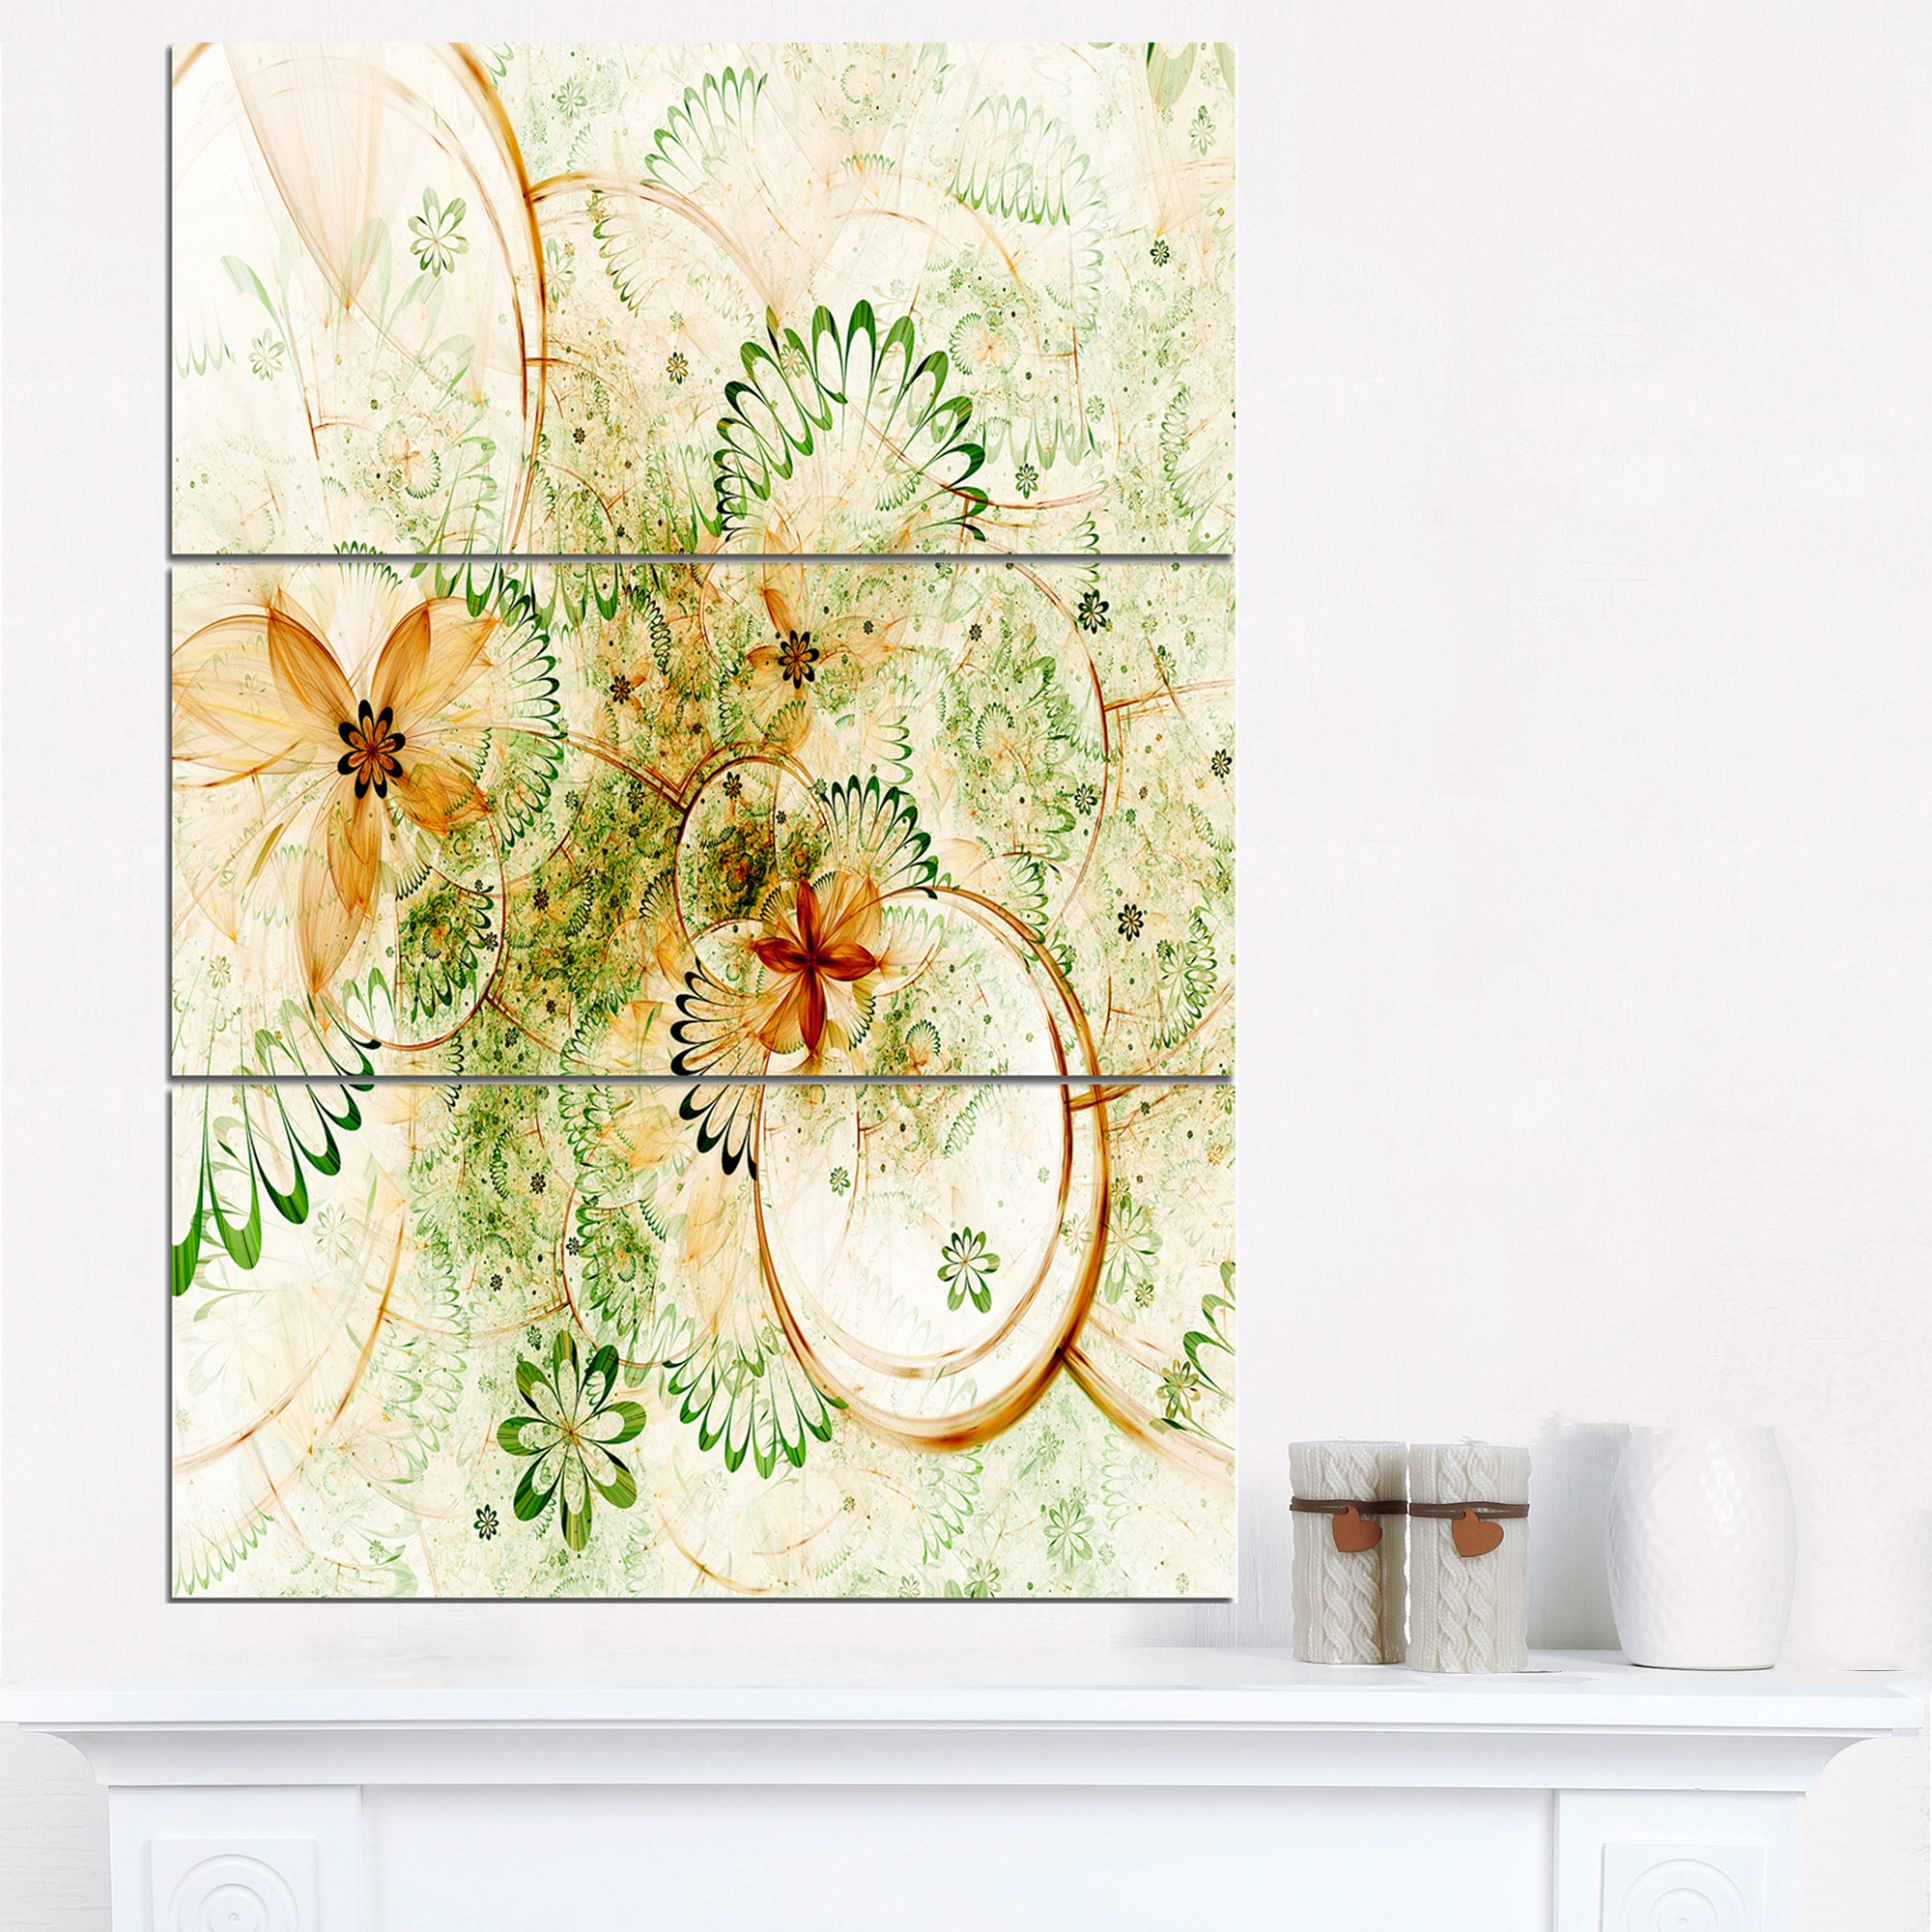 Awesome Floral Wall Art Canvas Vignette - All About Wallart ...